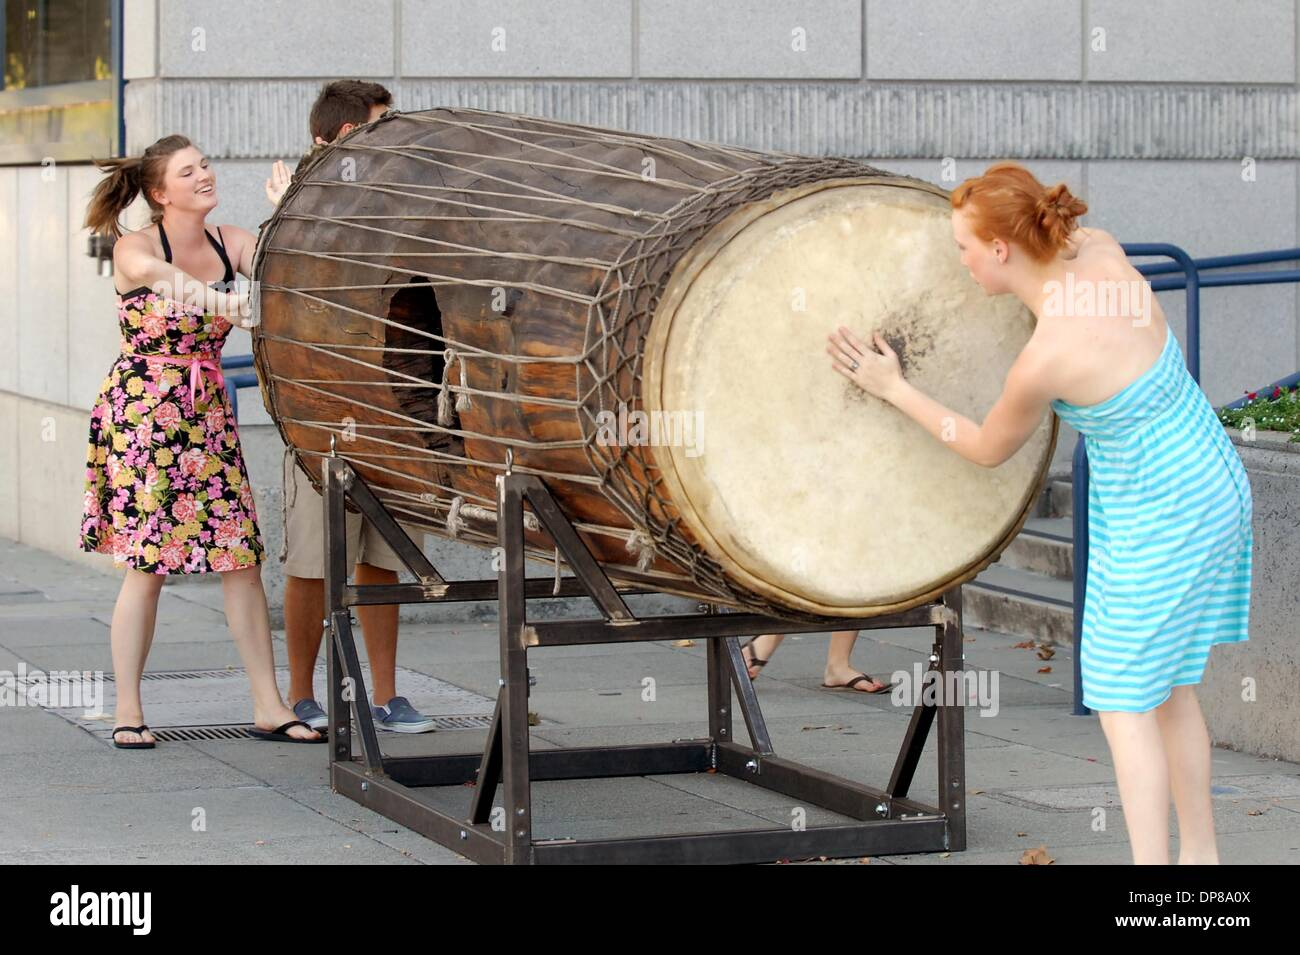 Amanda Denison, Walnut Creek, left, and Erin Searfus, Pittsburg, get into the beat of a doubled-sided drum outside of the Lesher Center for the Arts in Walnut Creek Calif., Tuesday, July 31, 2007. Two giant drums have been installed outside the Lesher Center for the Arts and are part of a Bedford Gallery exhibit. The drums belong to artist and filmmaker Banker White. The double-sid - Stock Image